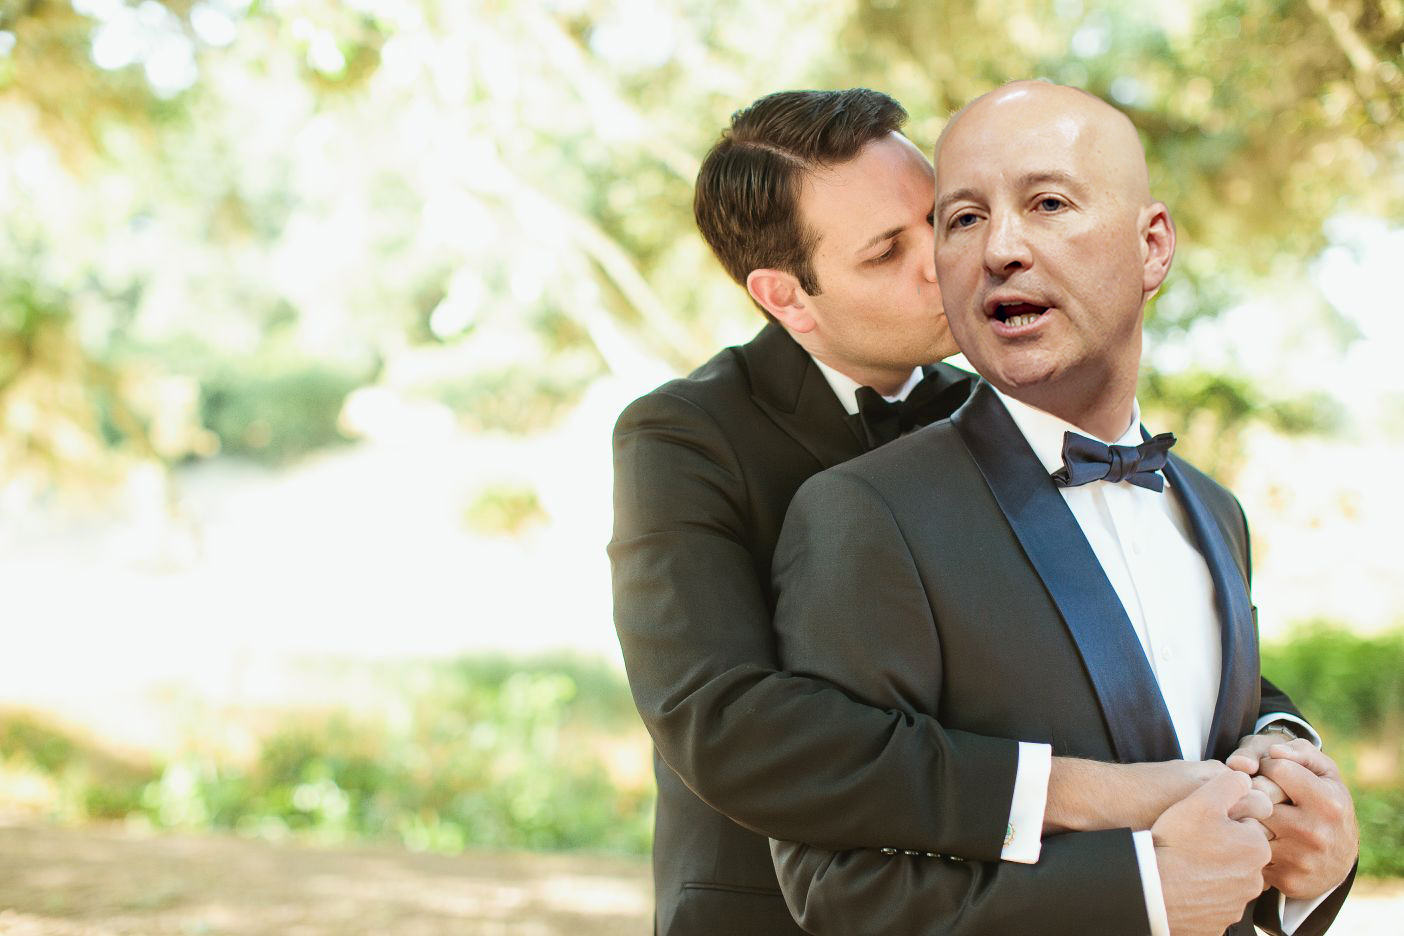 Pete Ricketts and boyfriend Steve Kandor pose embracing each other.